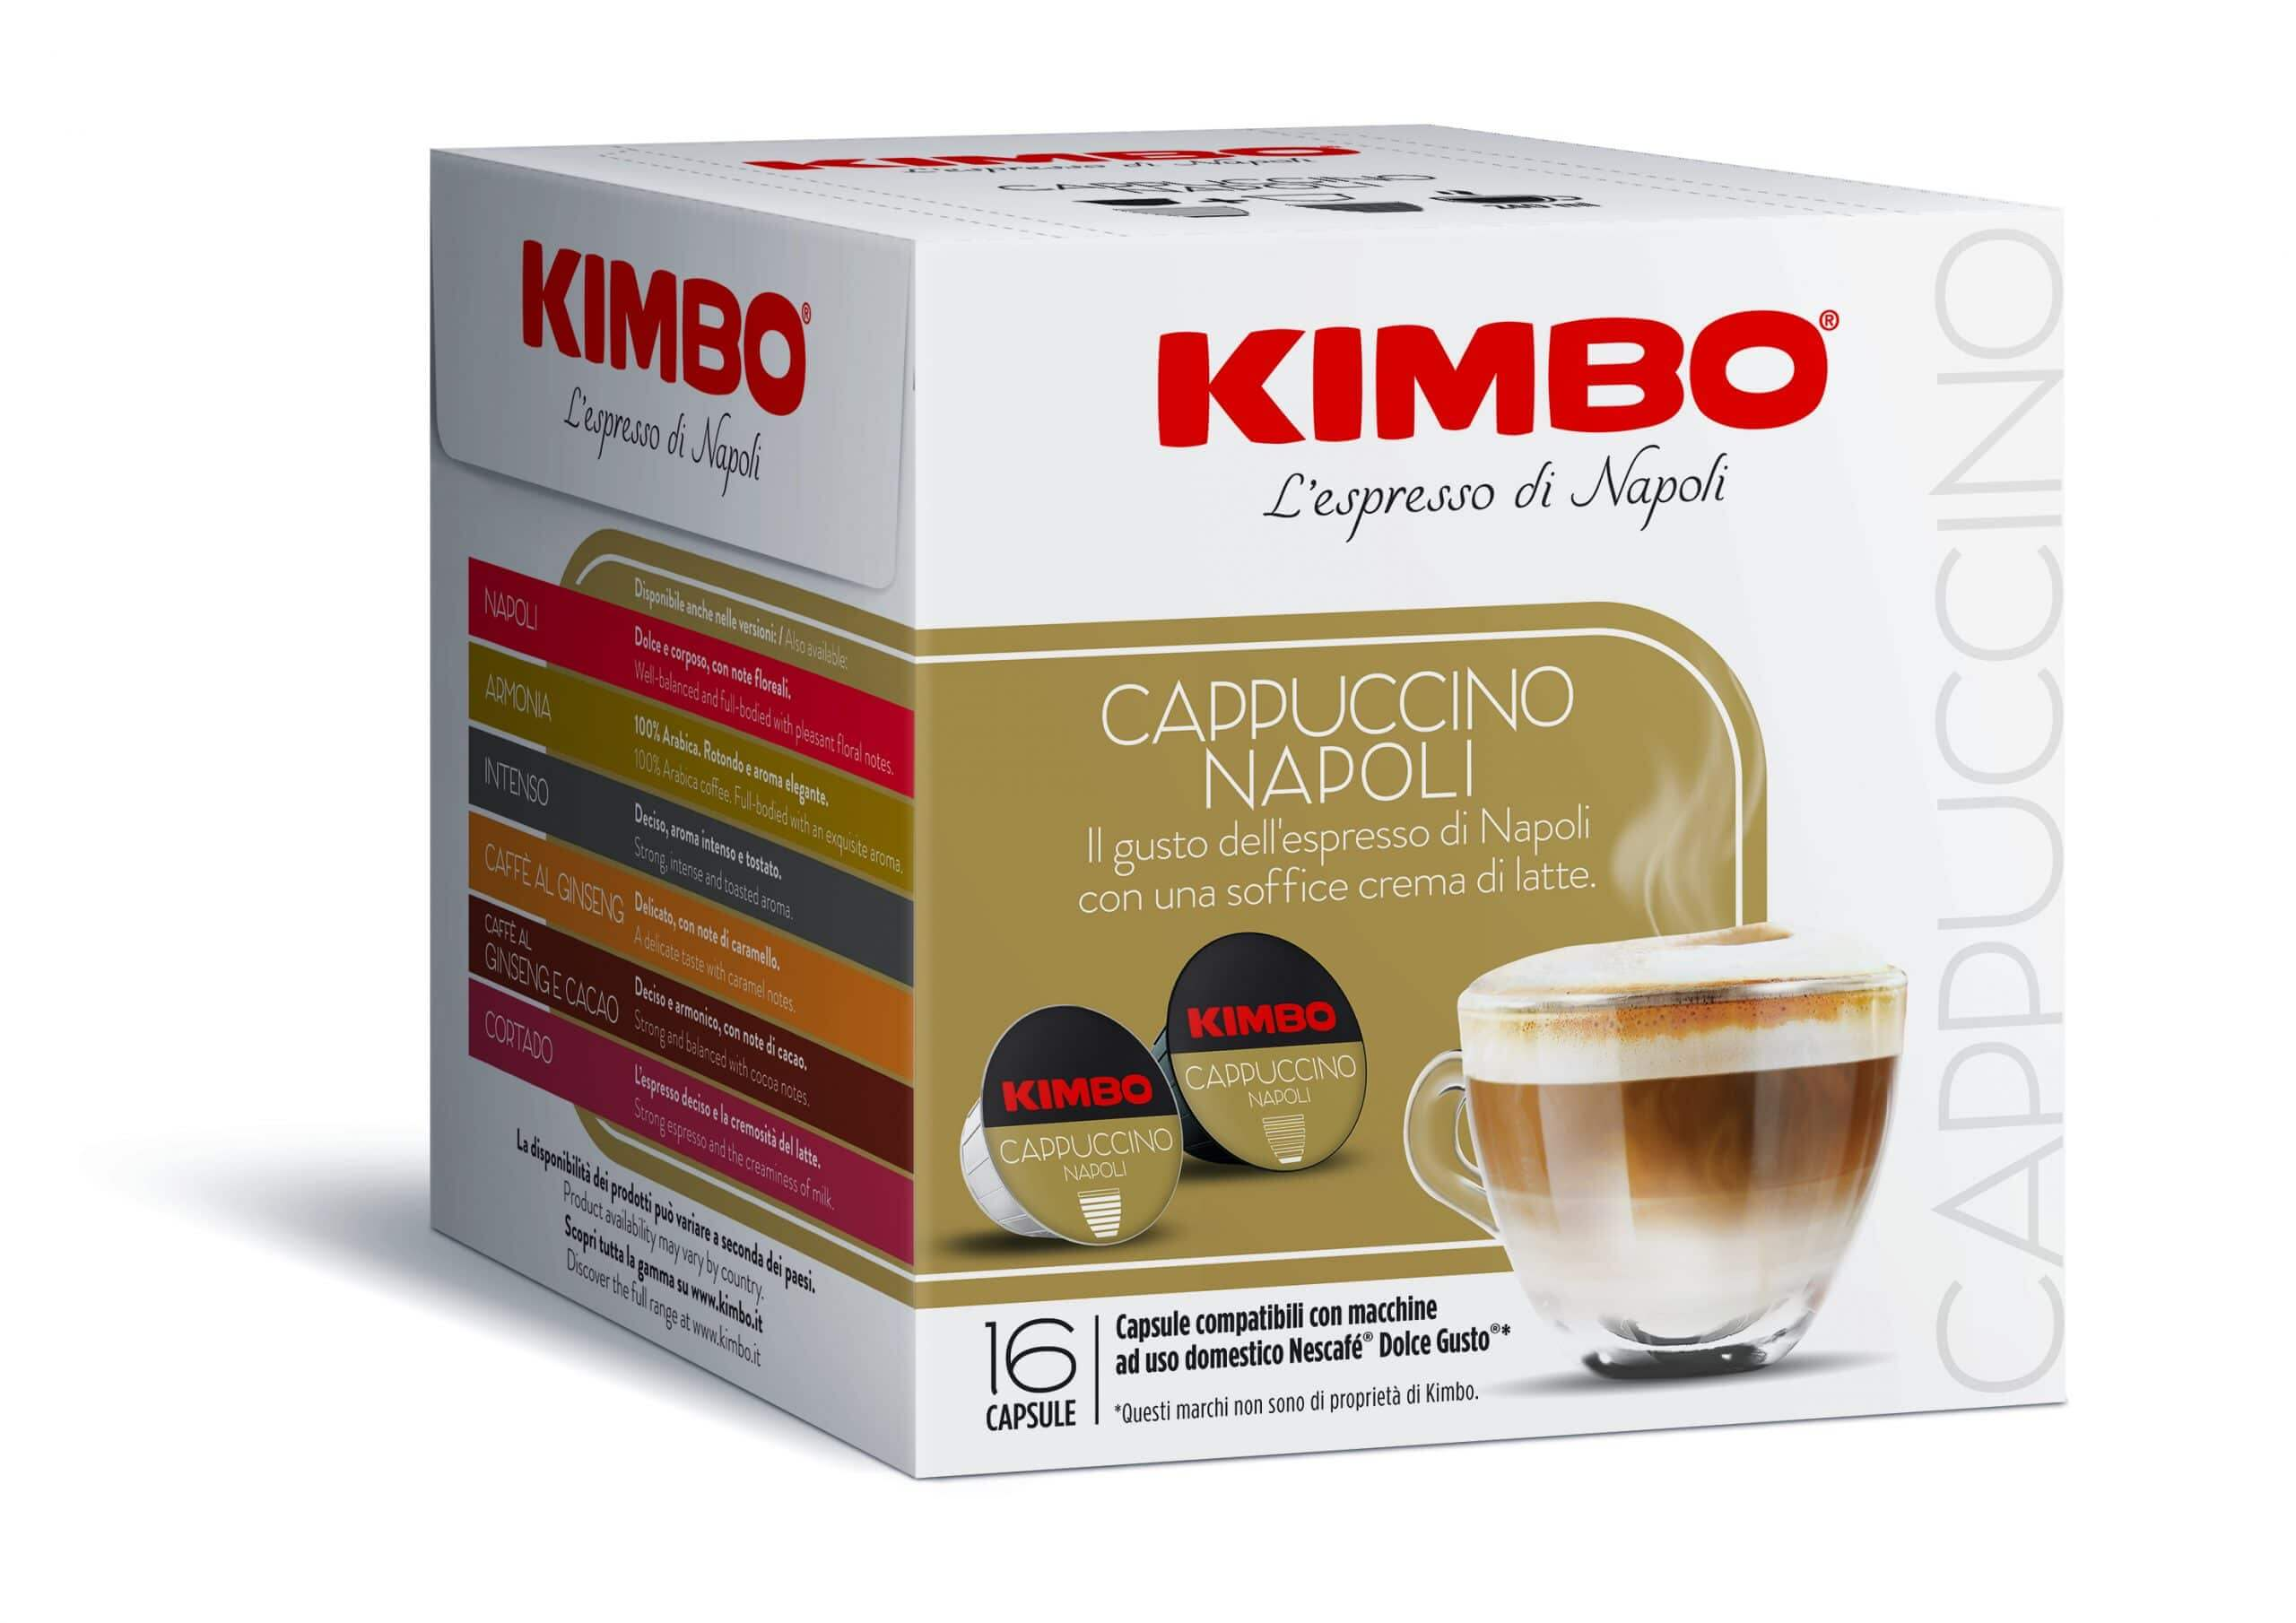 KIMBO Dolce gusto CAPPUCCINO 16pz